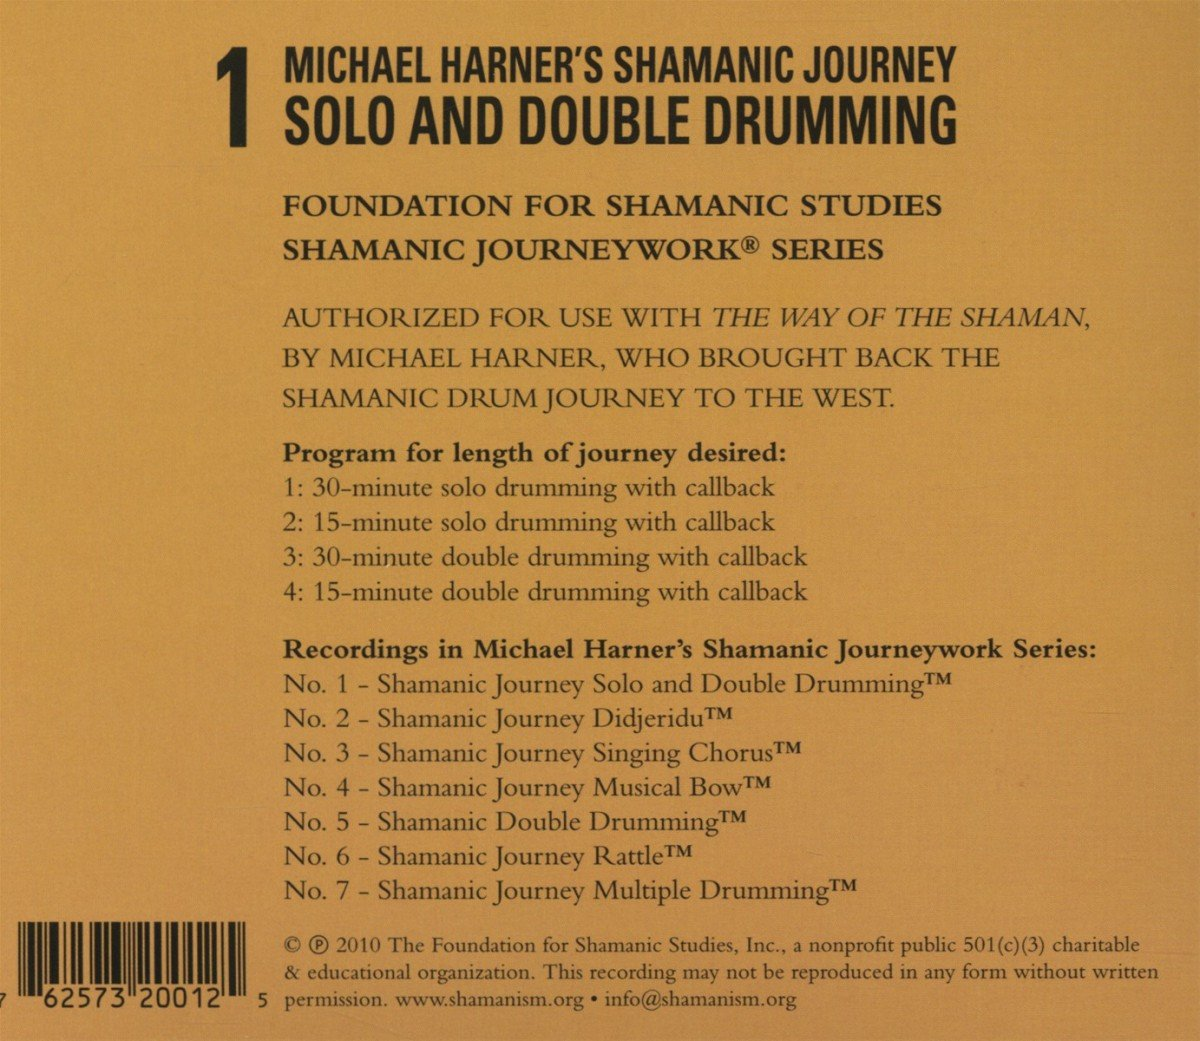 Shamanic journey solo and double drumming michael harner amazon es m sica